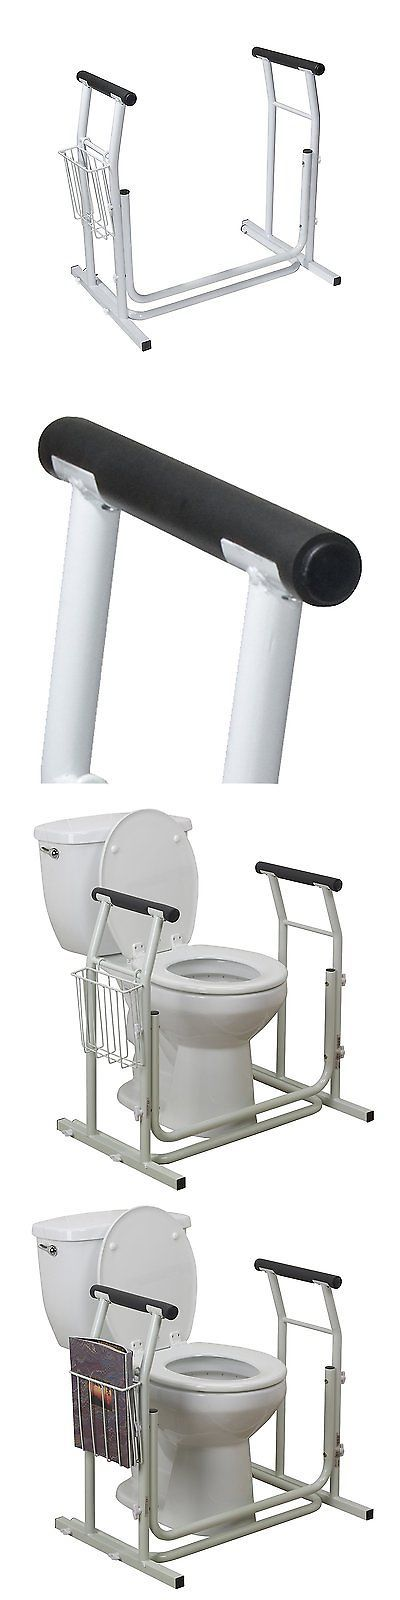 Handles and Rails: Toilet Safety Rail Frame Bar Support Bathroom Stand Grab Medical Alone Handicap BUY IT NOW ONLY: $46.12